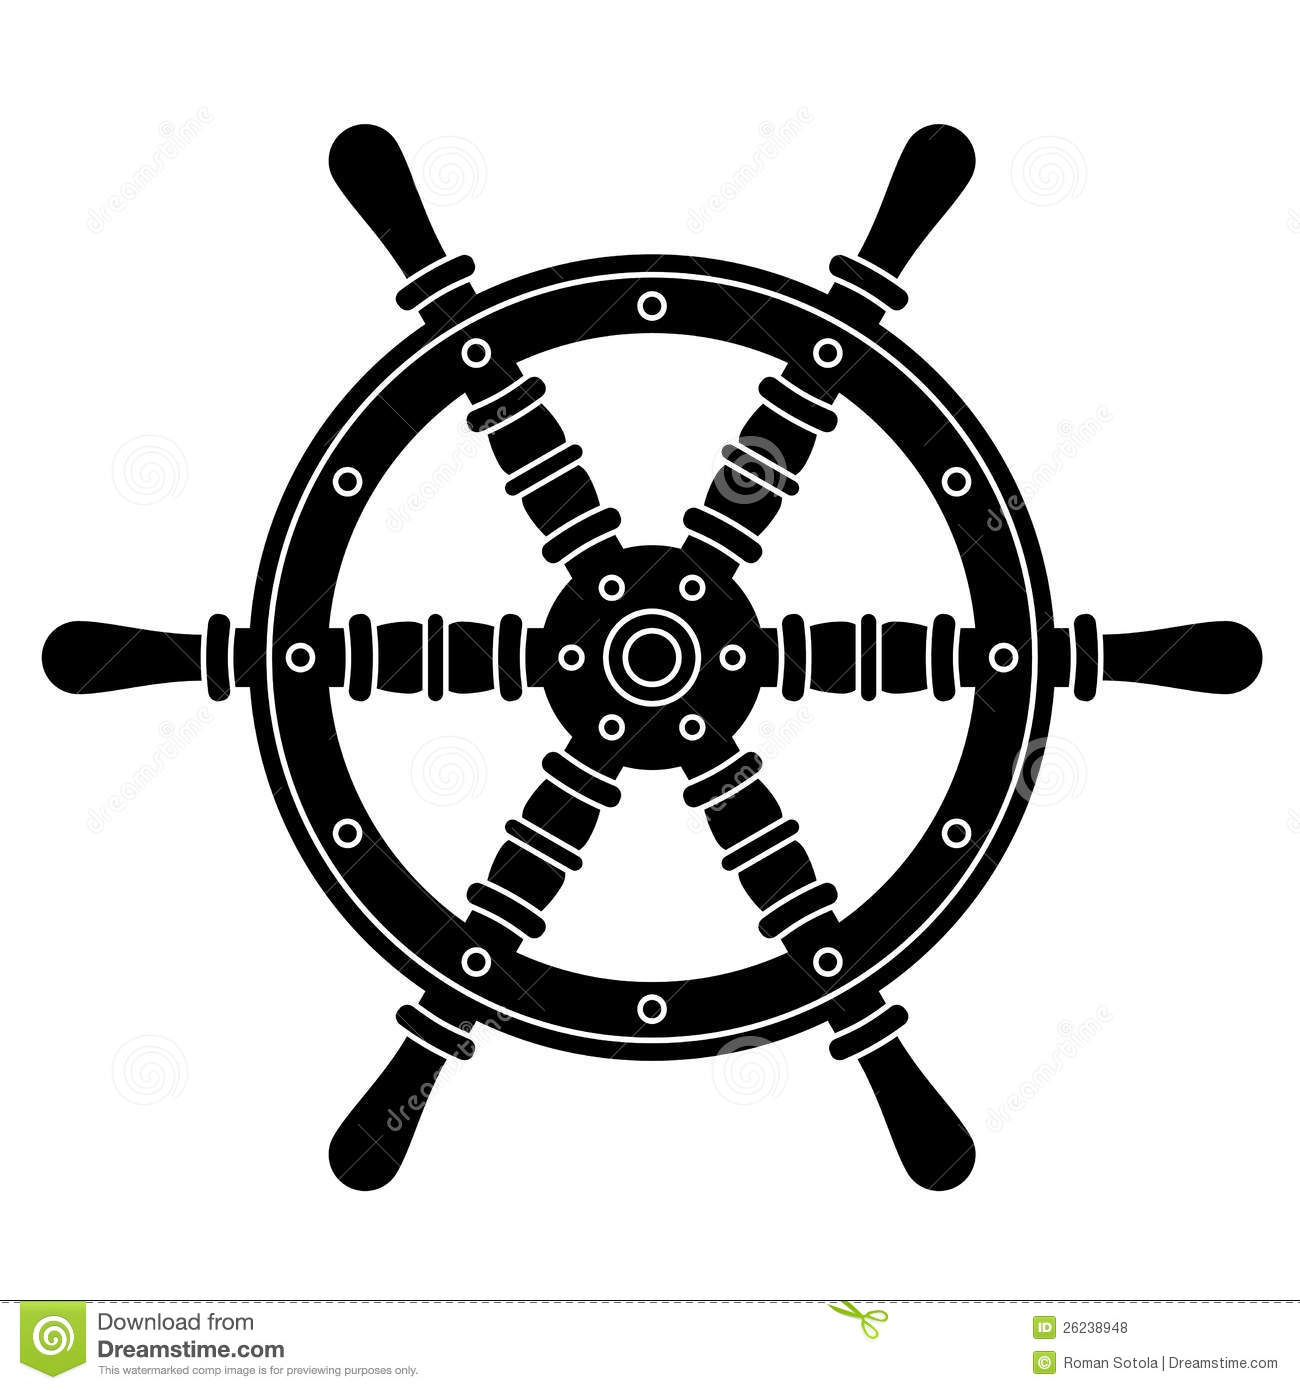 Nautical Boat Steering Wheel Silhouette Royalty Free Stock Photos ...